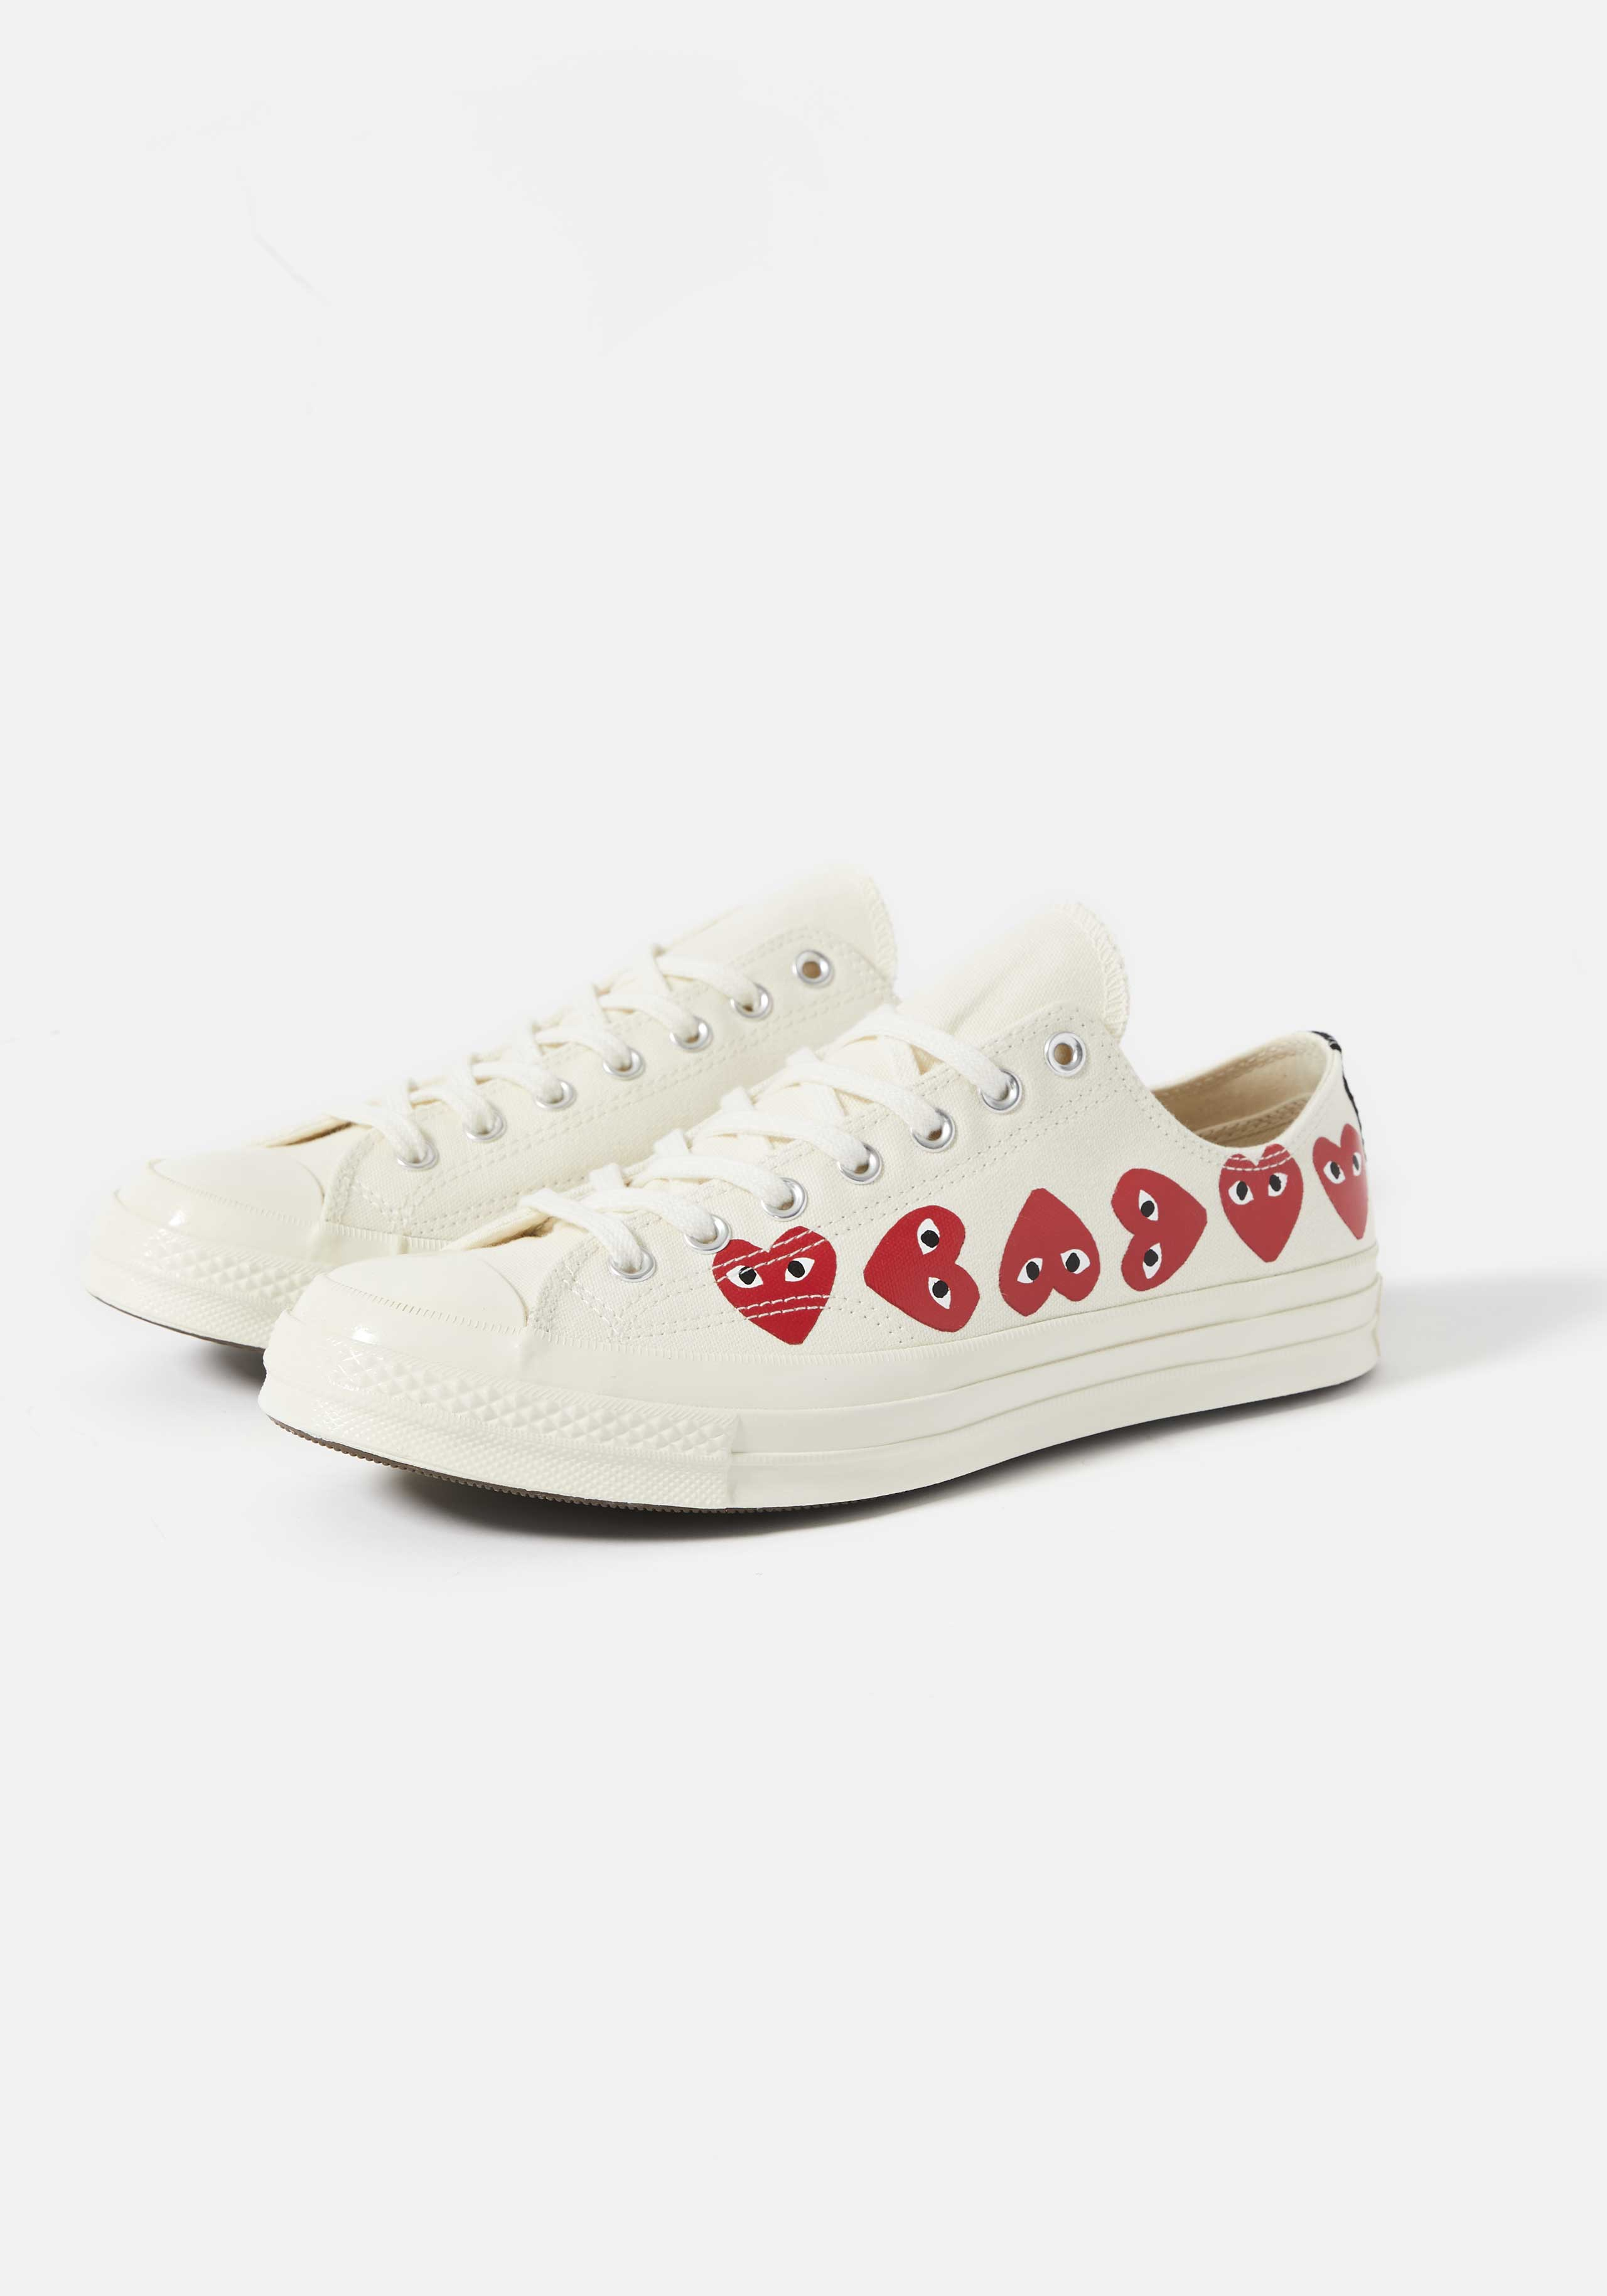 cdg play converse multi heart 70's low 2